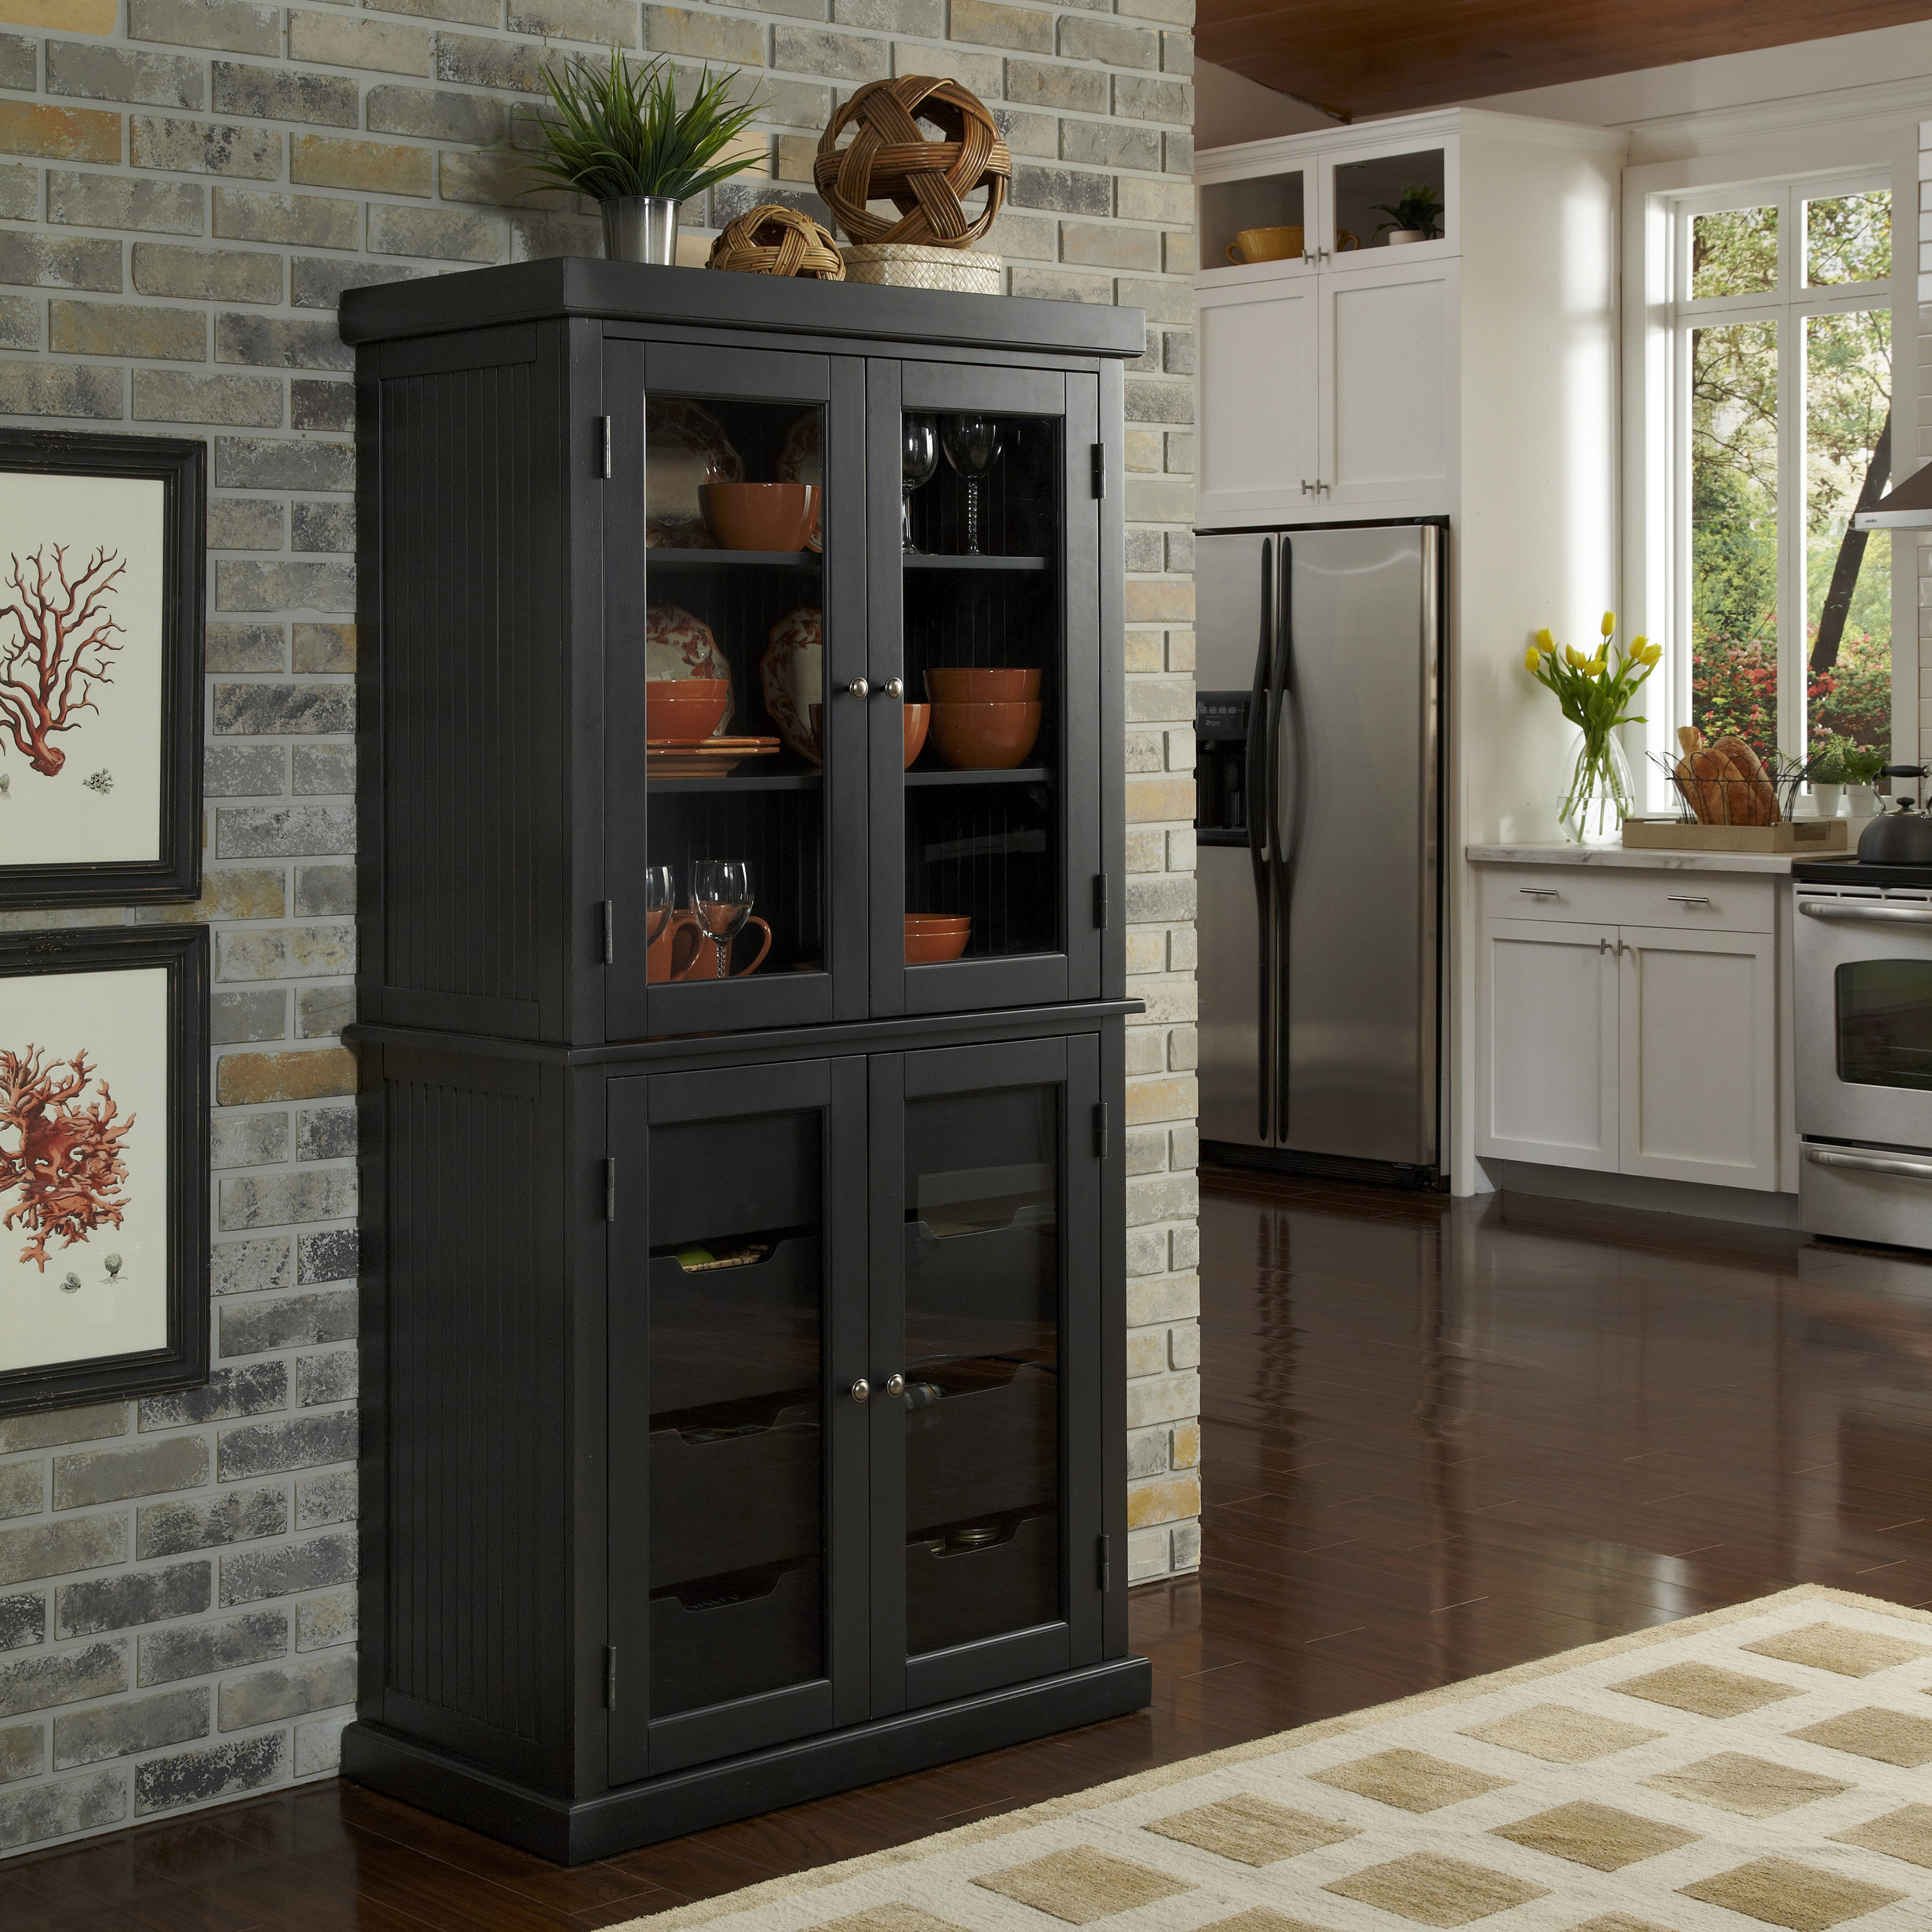 Pantry Cabinet Pantry Cabinet Storage with Retro Black